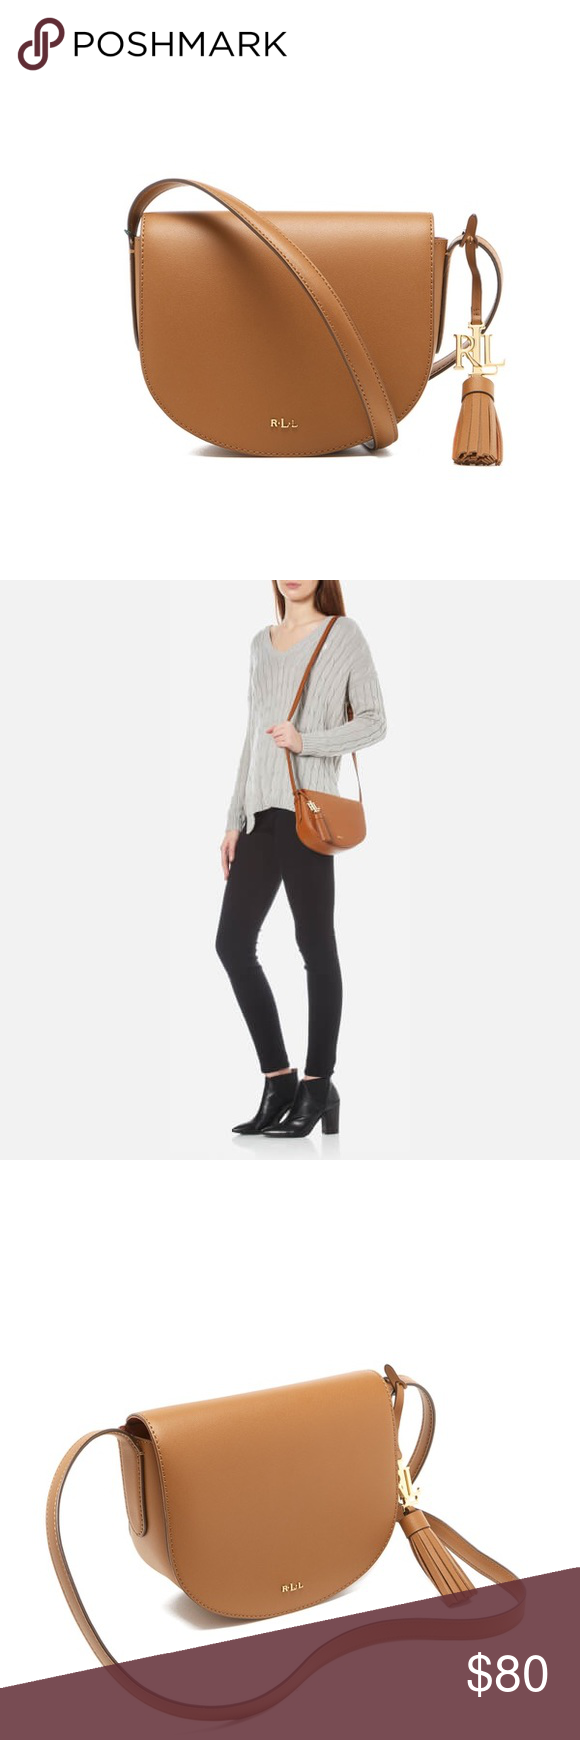 R A L P H L A U R E N Dryden Caley Saddle Bag Women s mini messenger bag  from Lauren Ralph Lauren. Crafted from 1bfed03230bfb